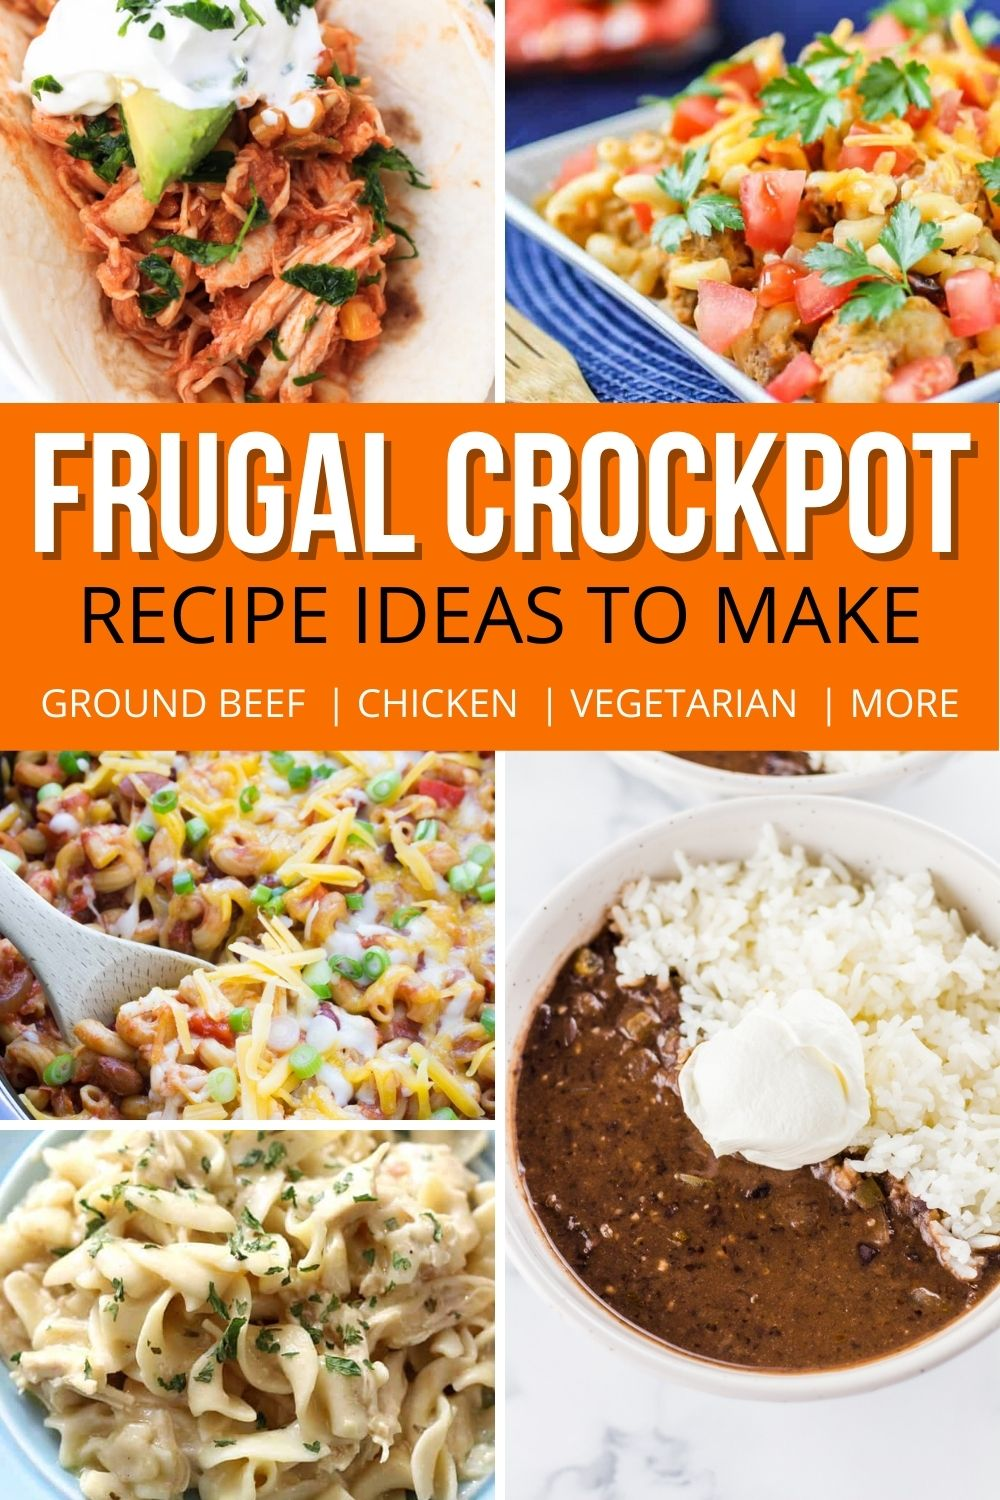 compilation of photos showing difference frugal crockpot recipes.